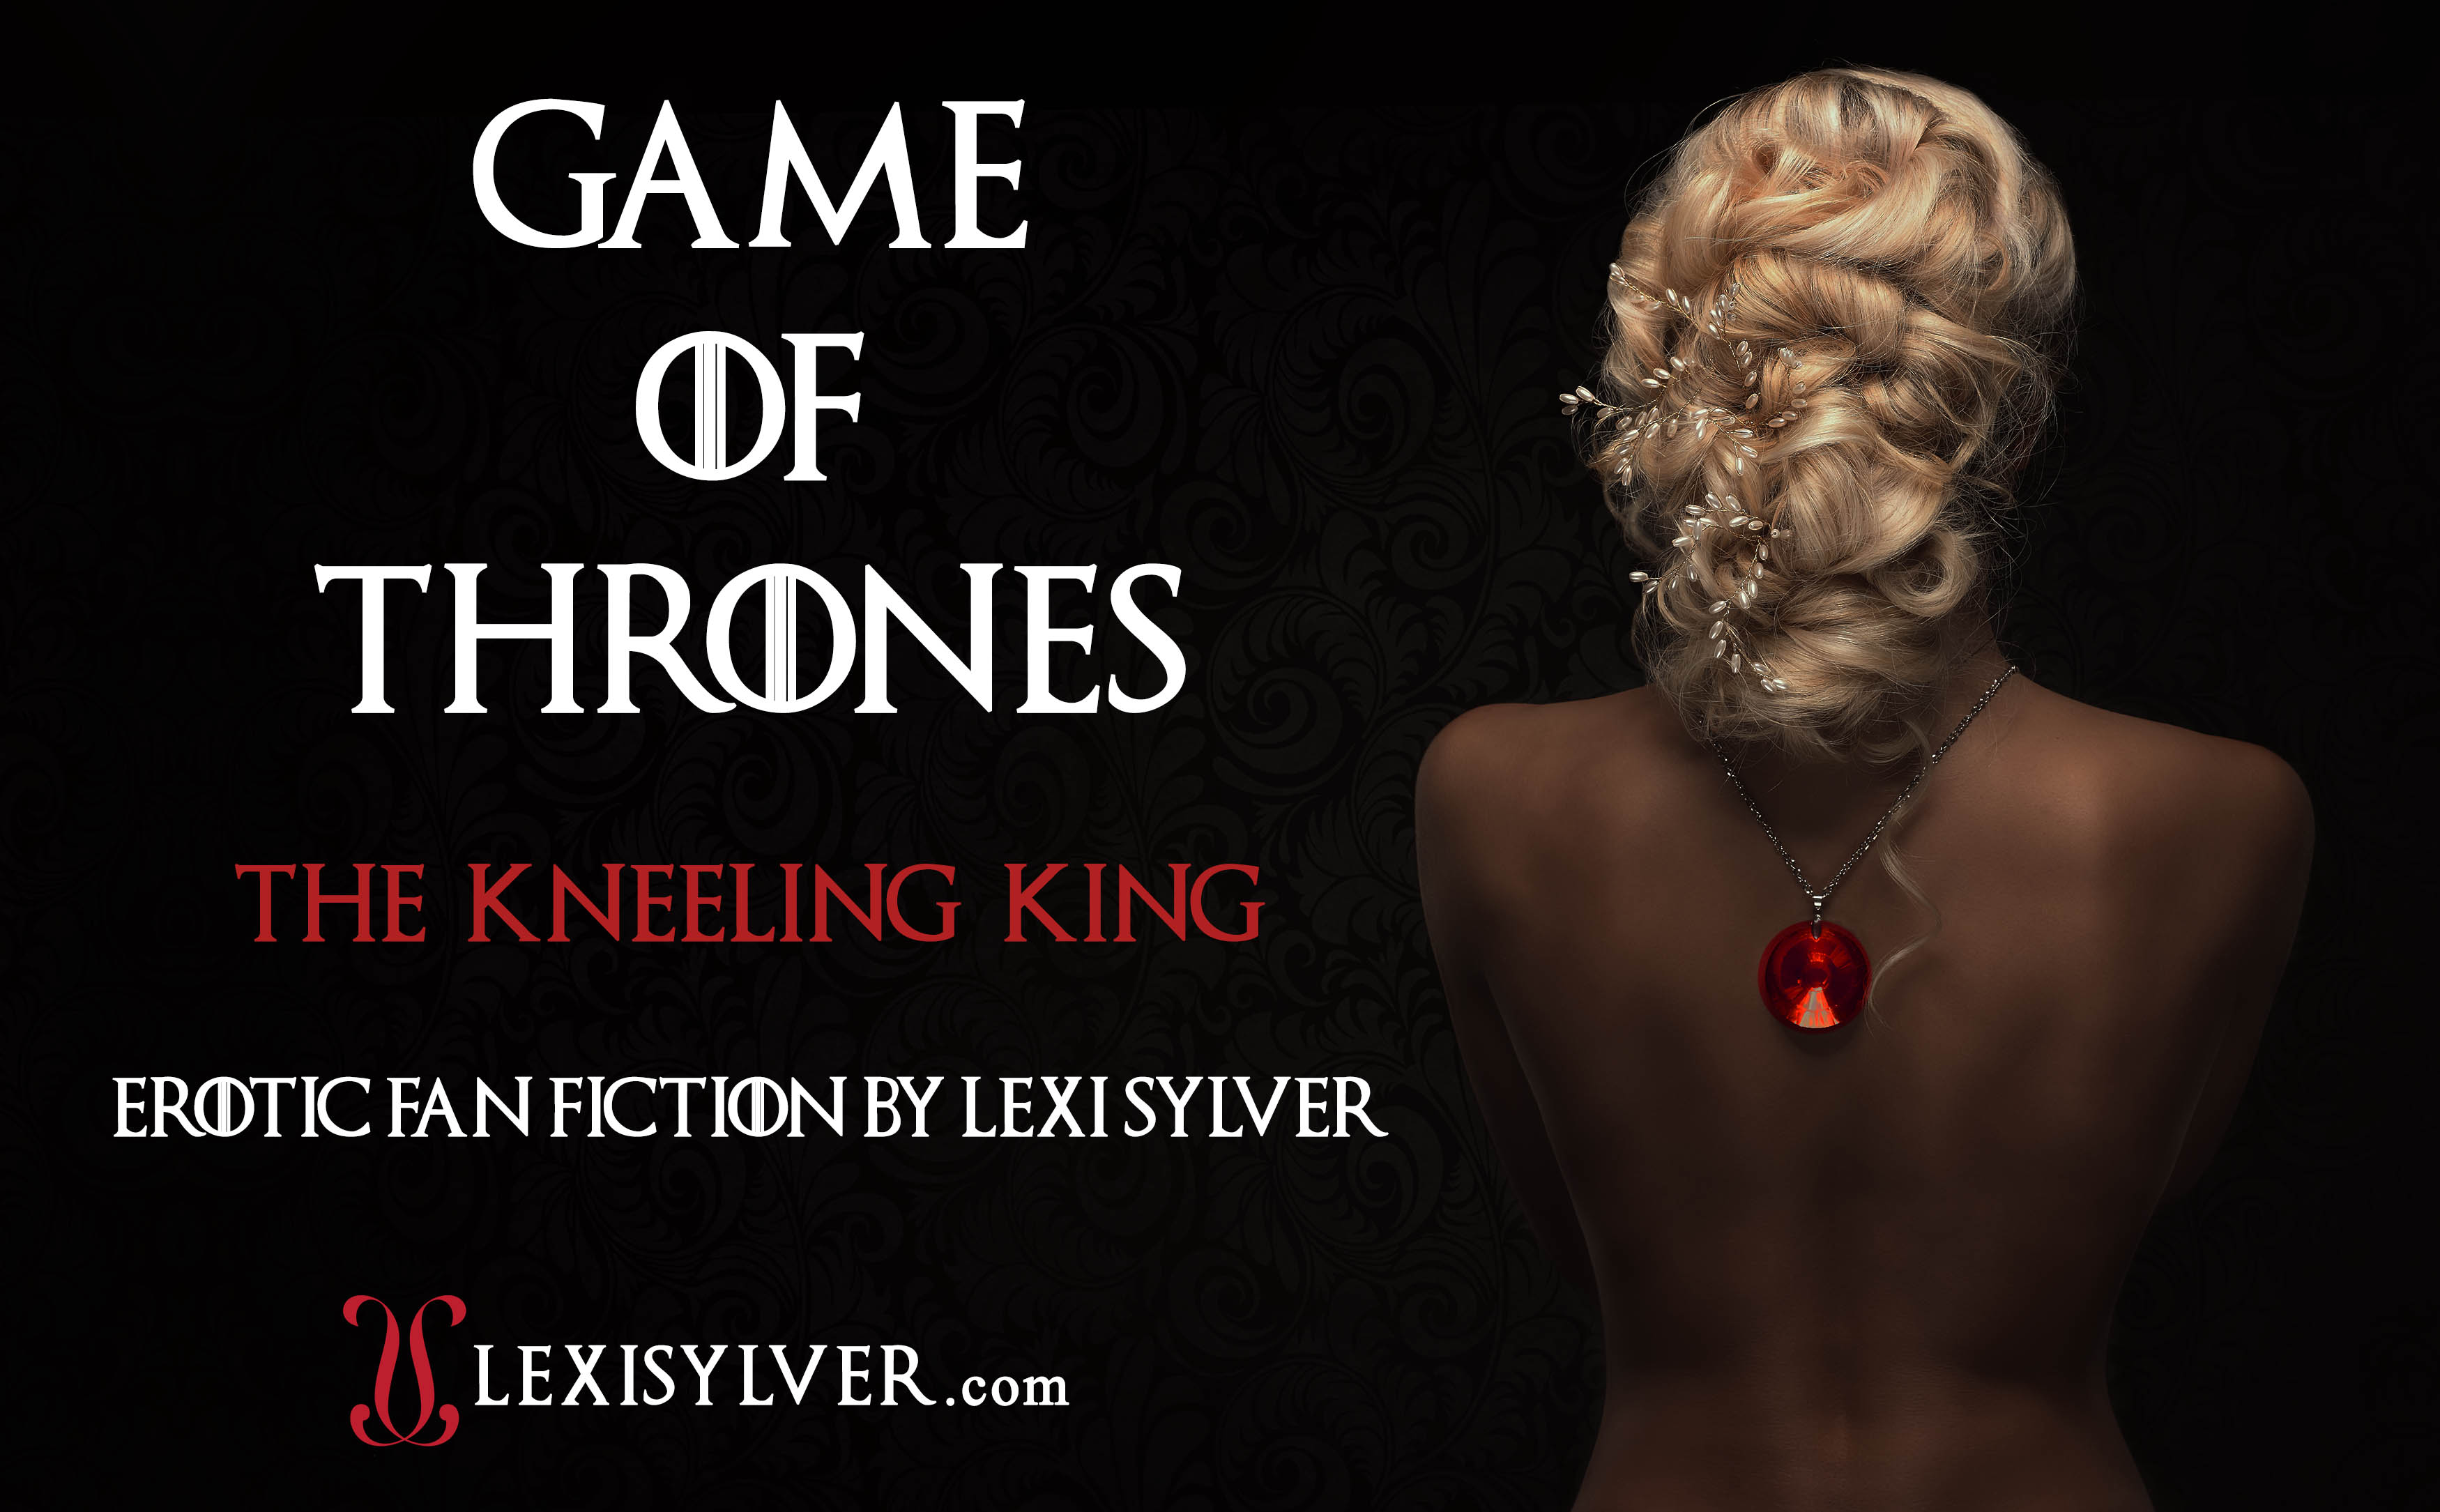 Game of Thrones Erotic Fan Fiction The Kneeling King by Lexi Sylver